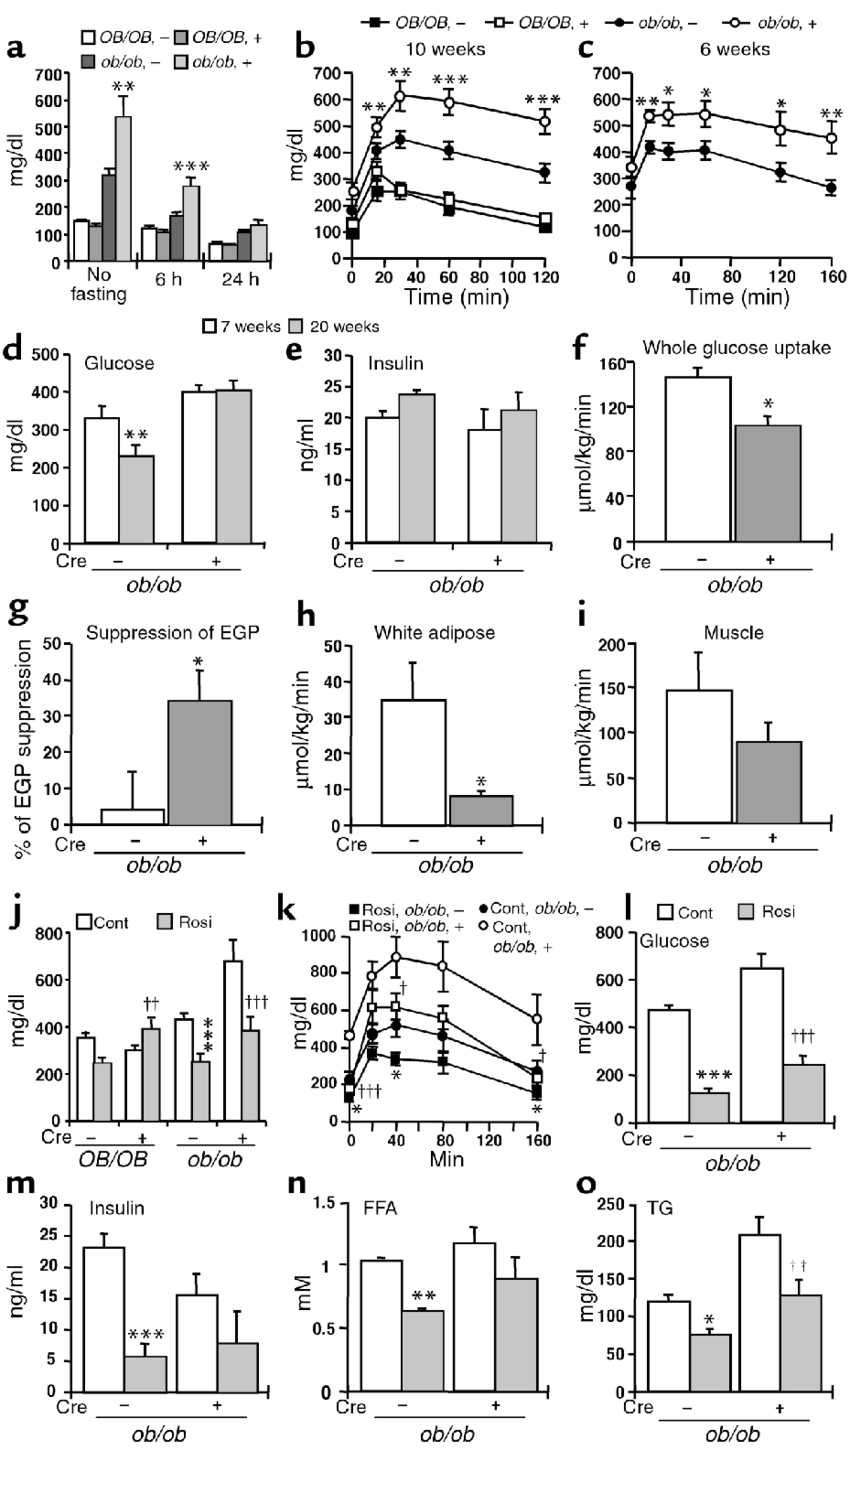 Effect of PPARγ deficiency on glucose homeostasis in the